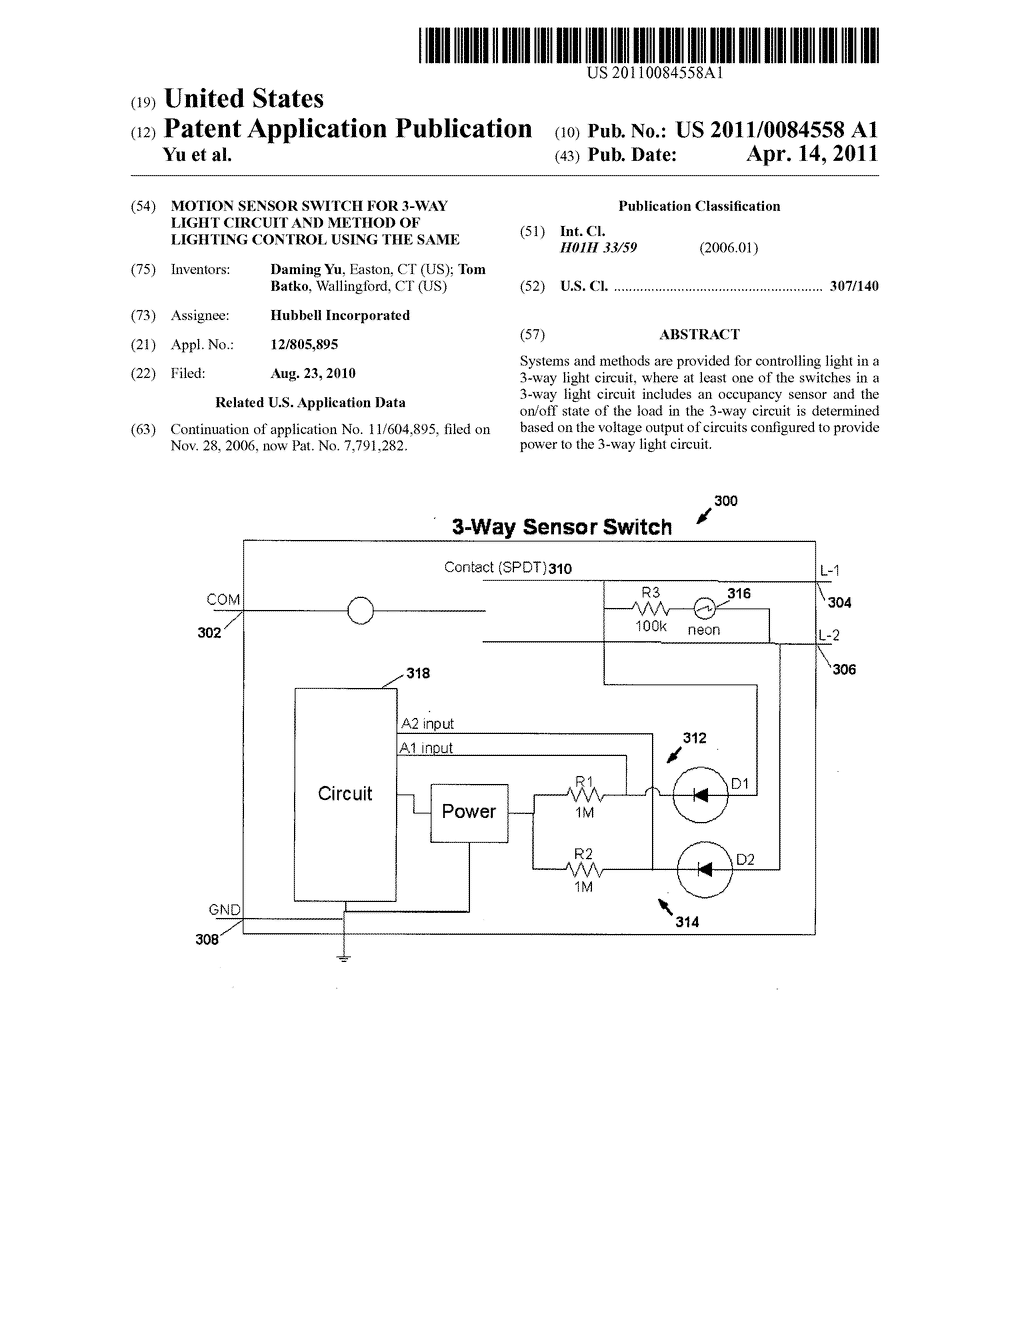 hight resolution of motion sensor switch for 3 way light circuit and method of lighting control using the same diagram schematic and image 01